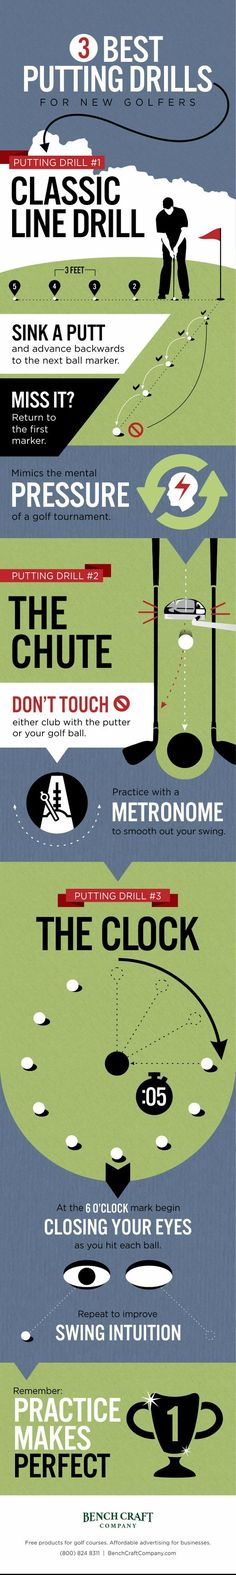 The 3 BEST putting drills for new golfers!  More at #lorisgolfshoppe